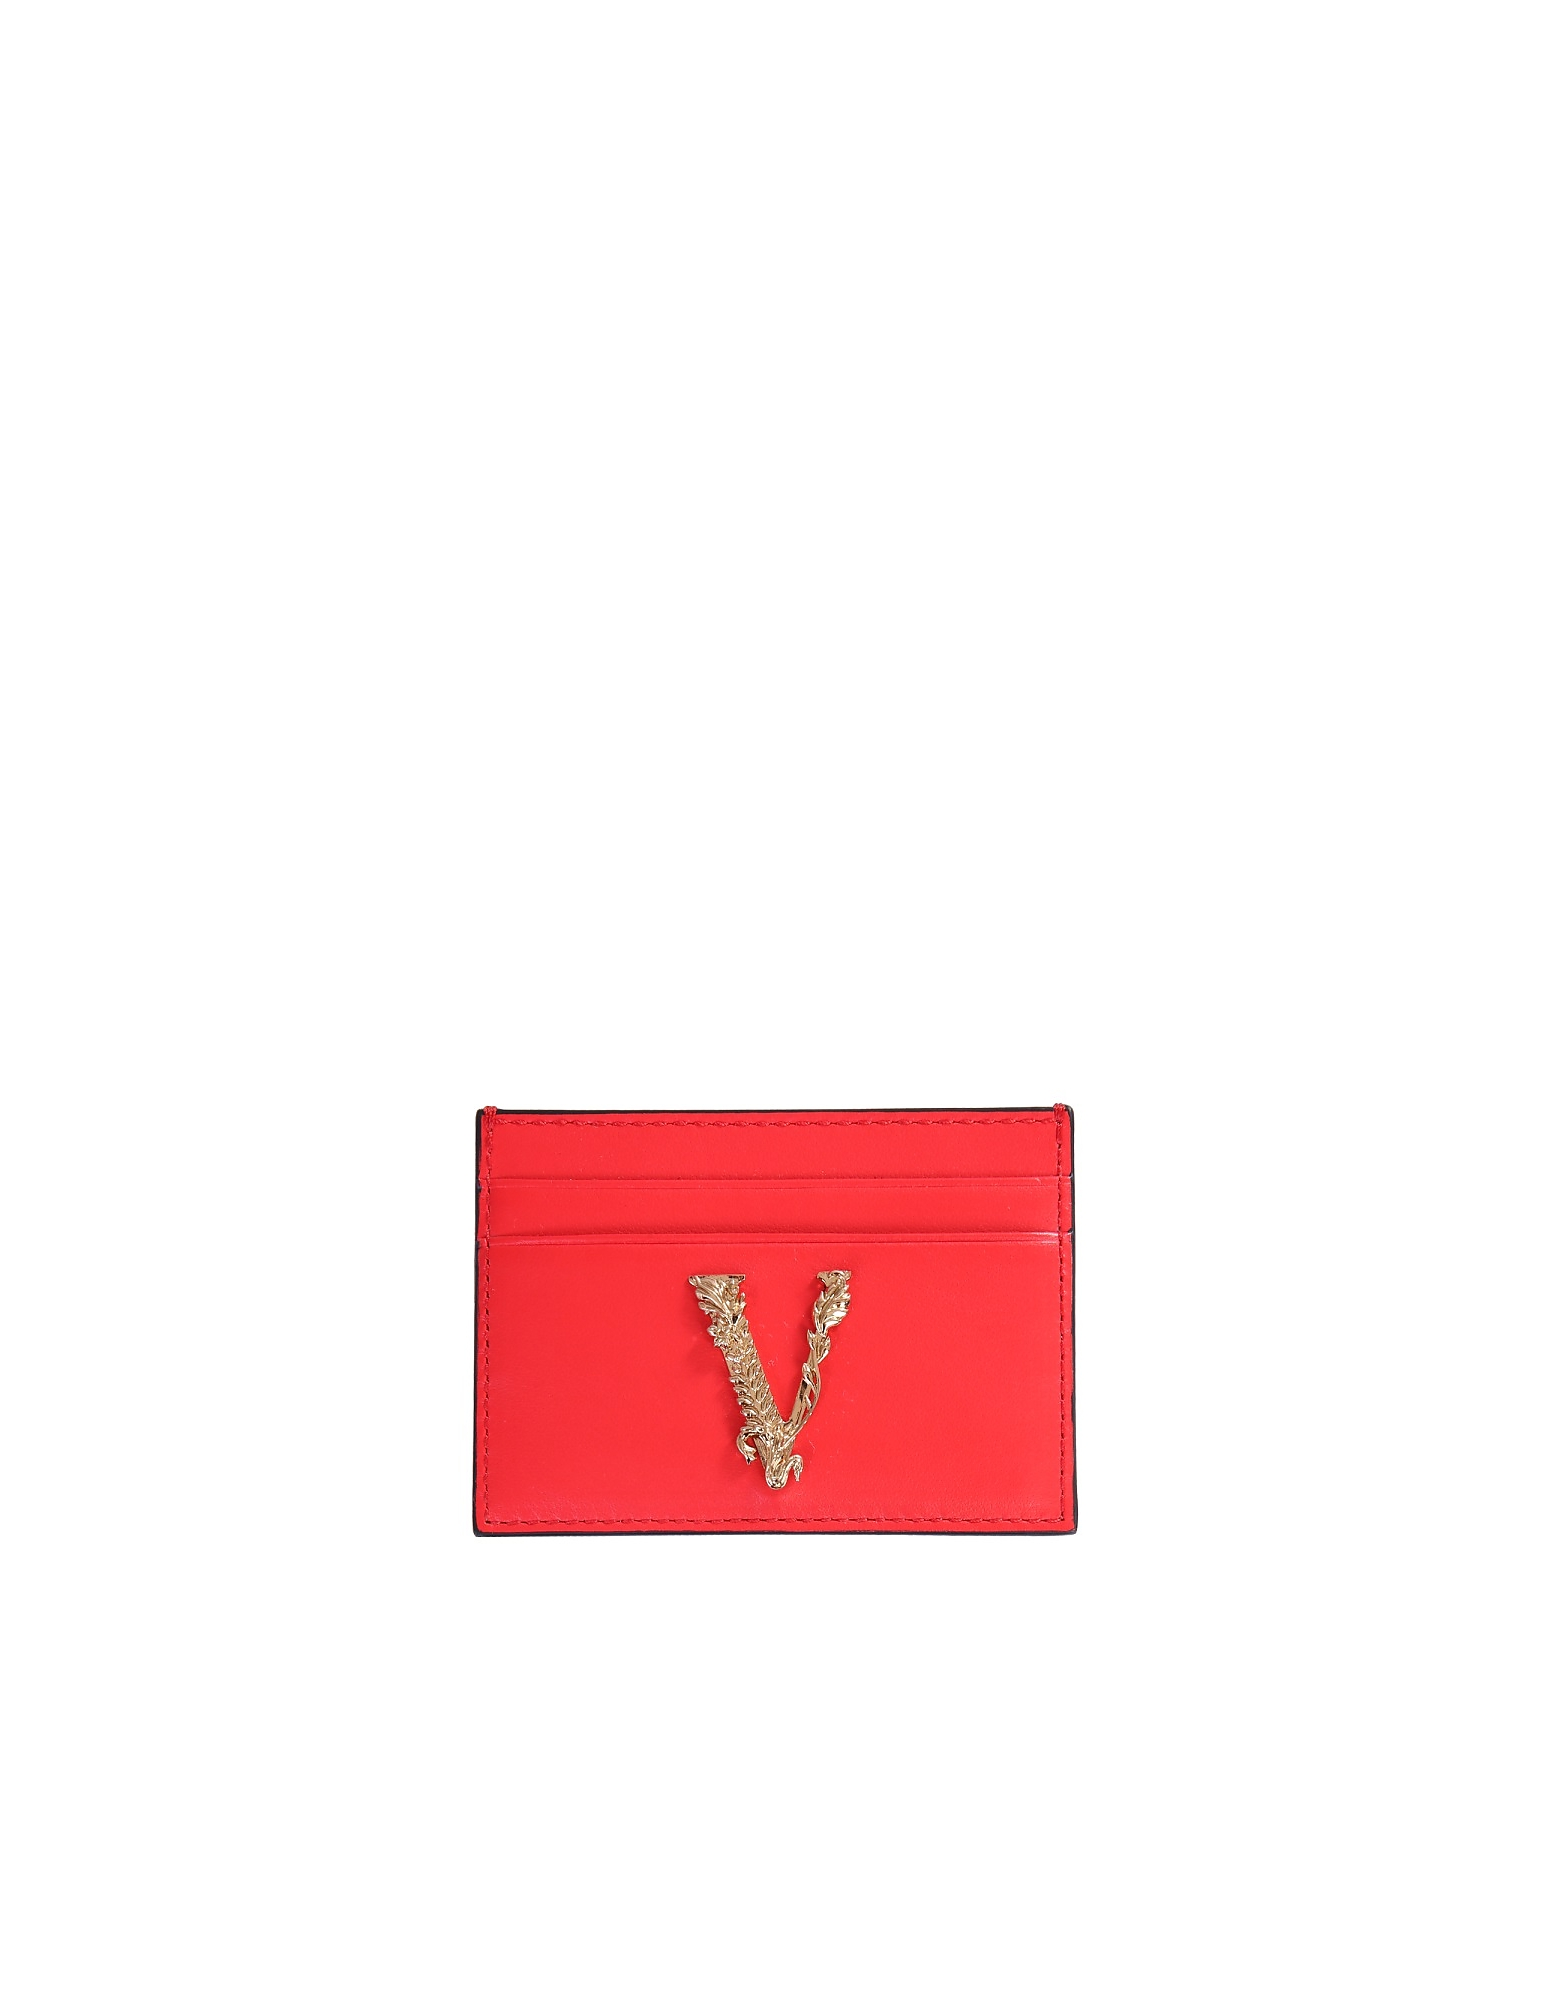 Versace Designer Wallets, Card Holder With Virtus Logo